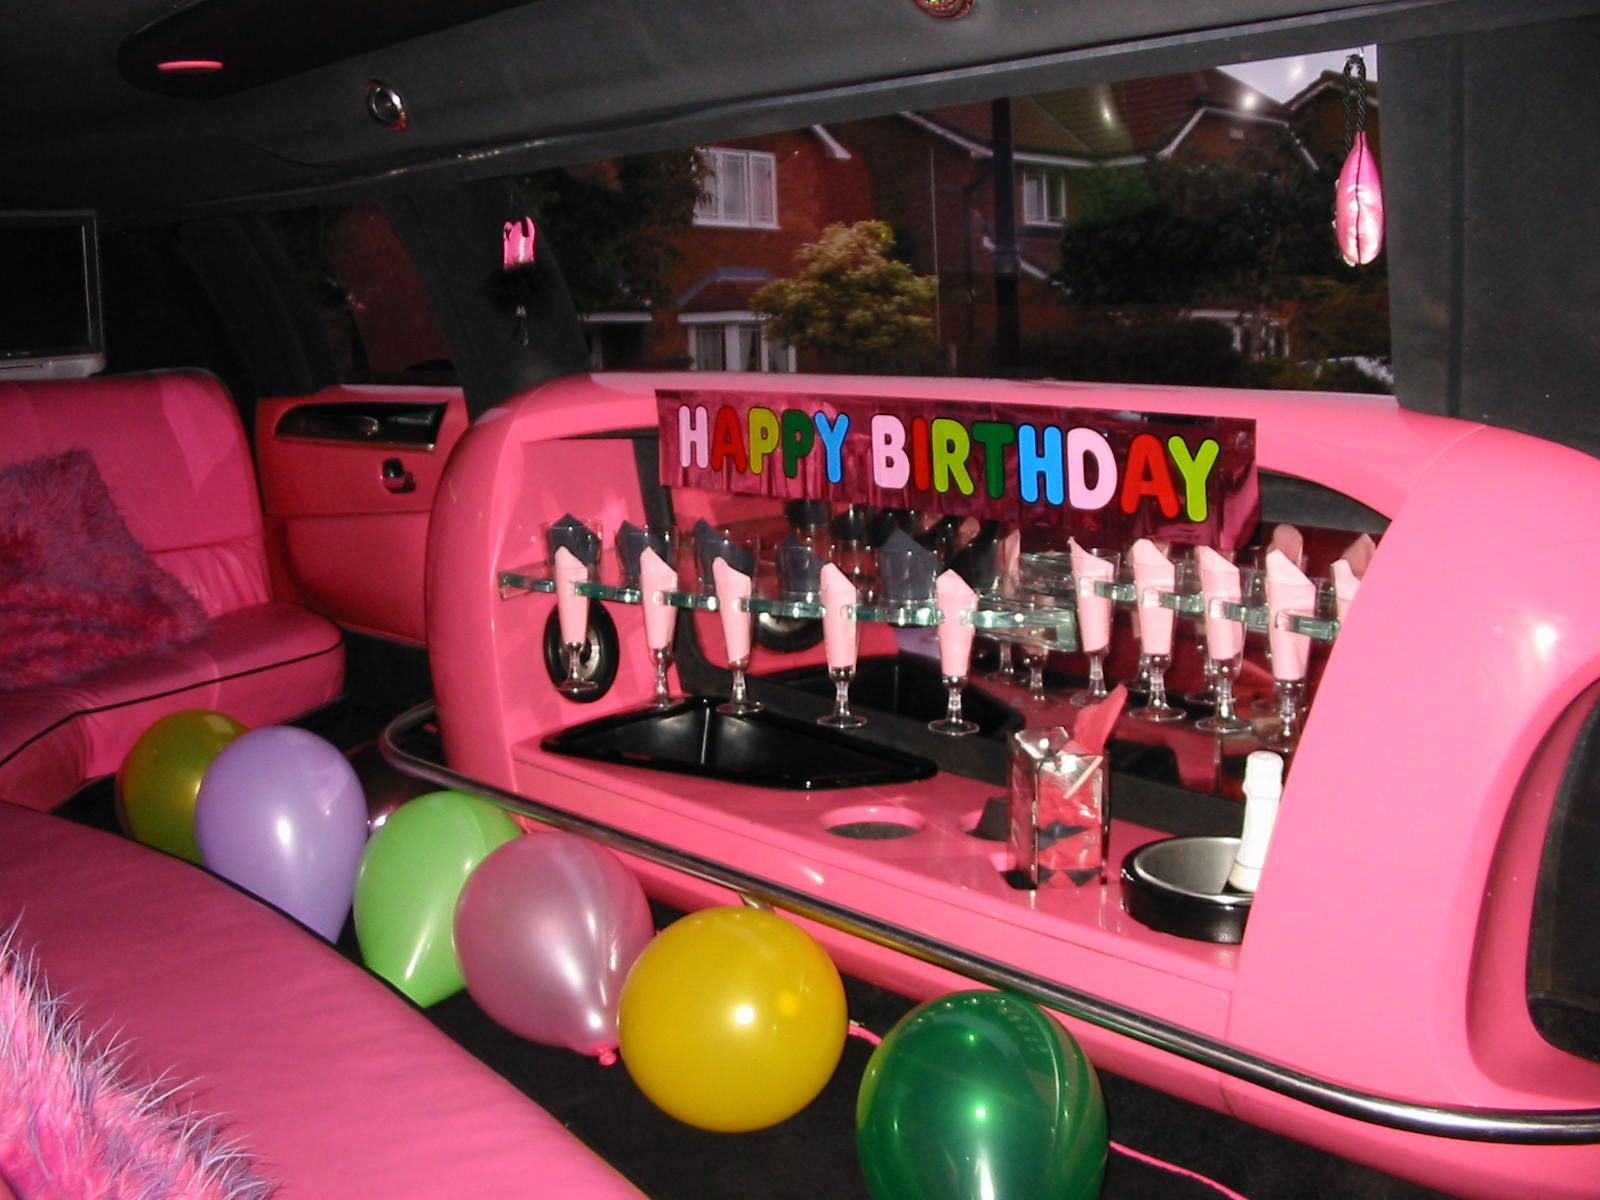 Limo London Limousine services are there for making your birthday ...